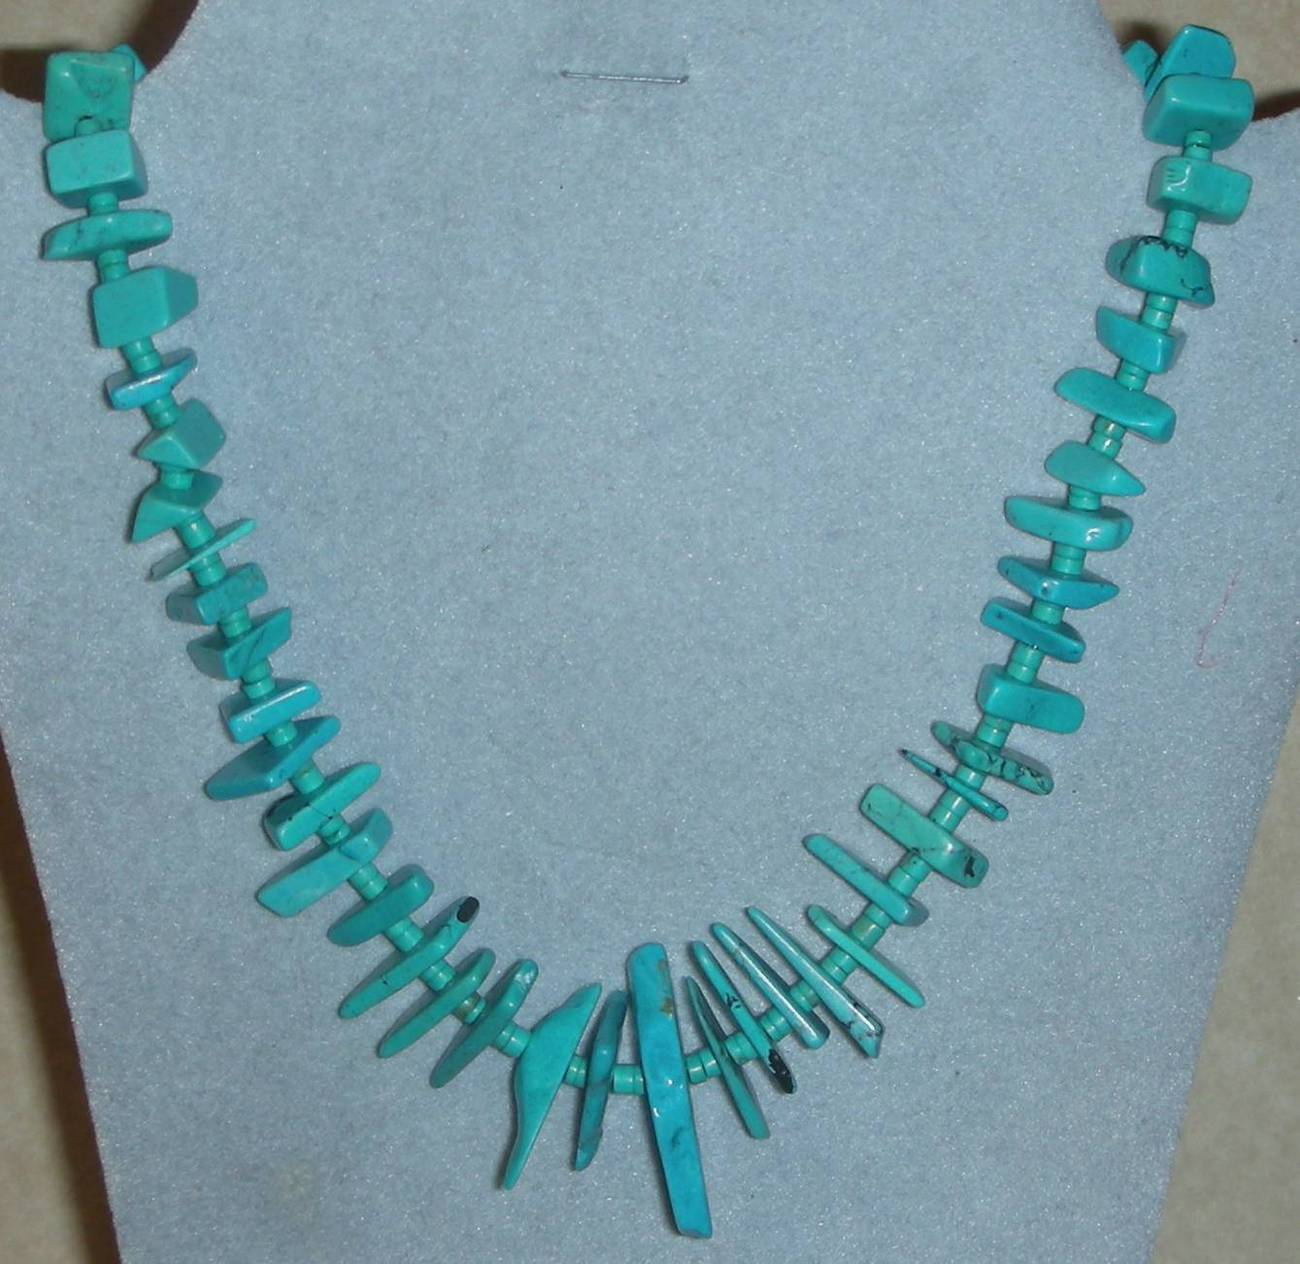 Genuine Gorgeous Turquoise Beads Necklace